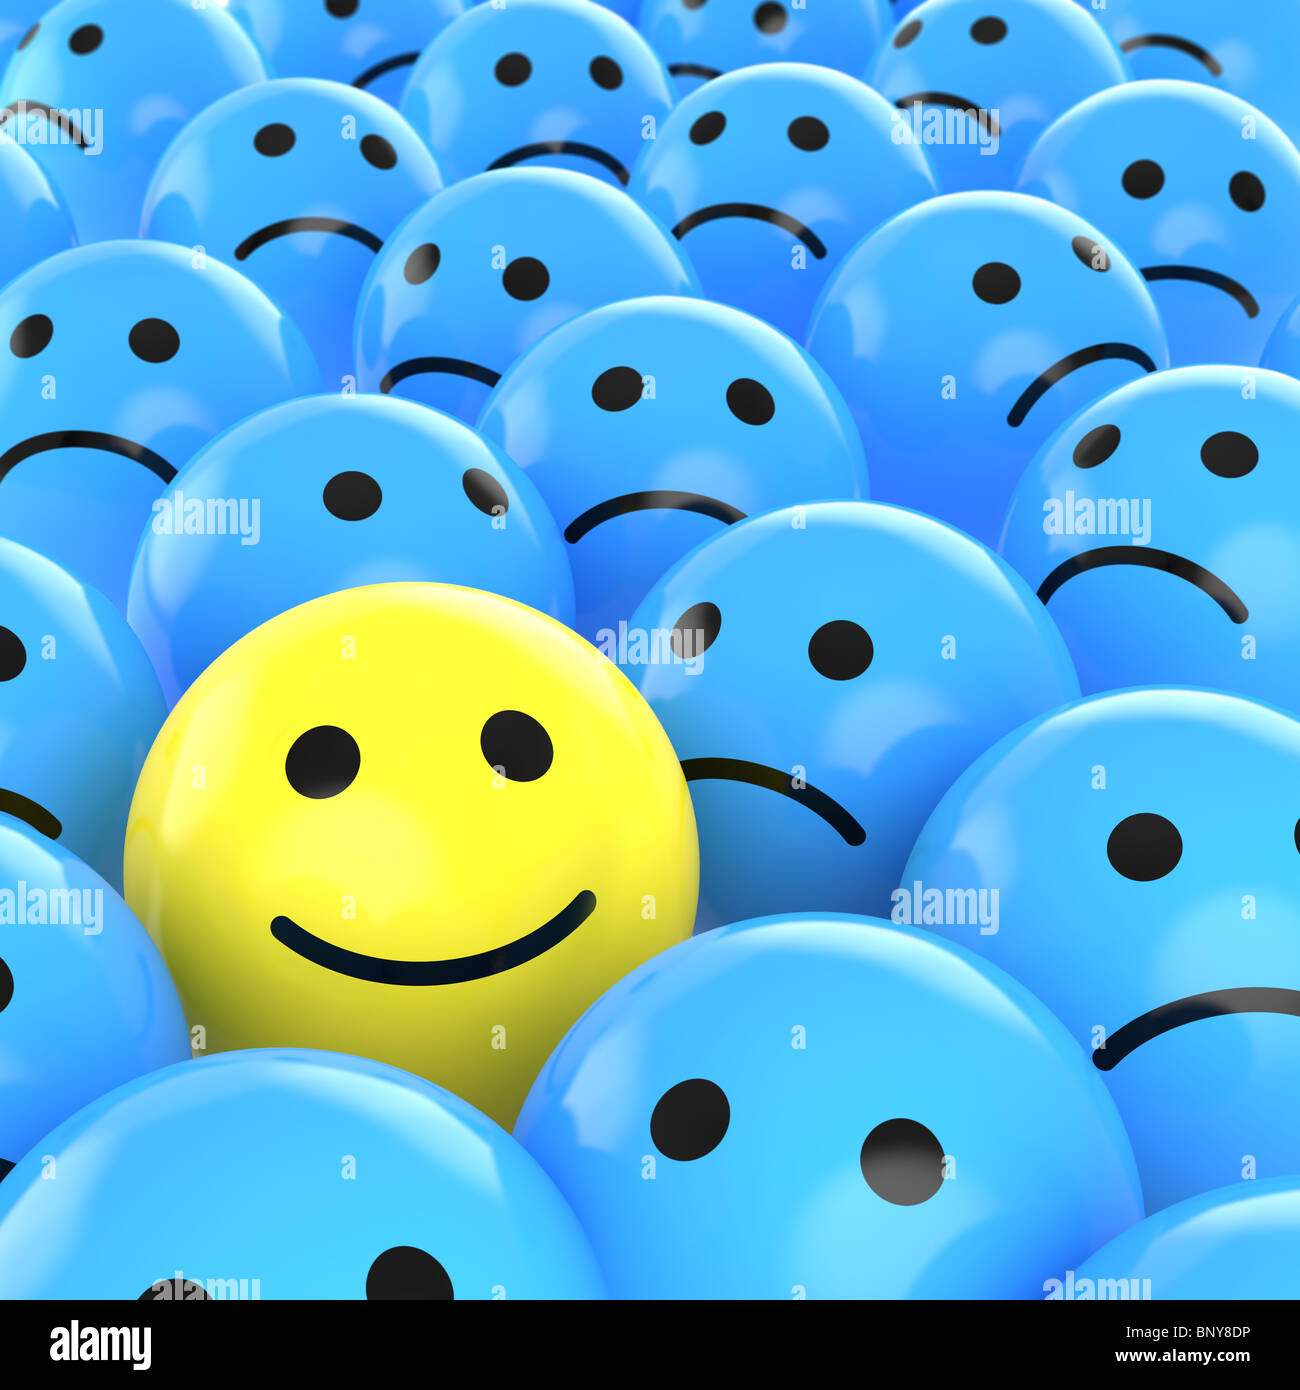 a yellow happy smiley between many blue sad others as concept for unique, optimistic, positive, etc. - Stock Image